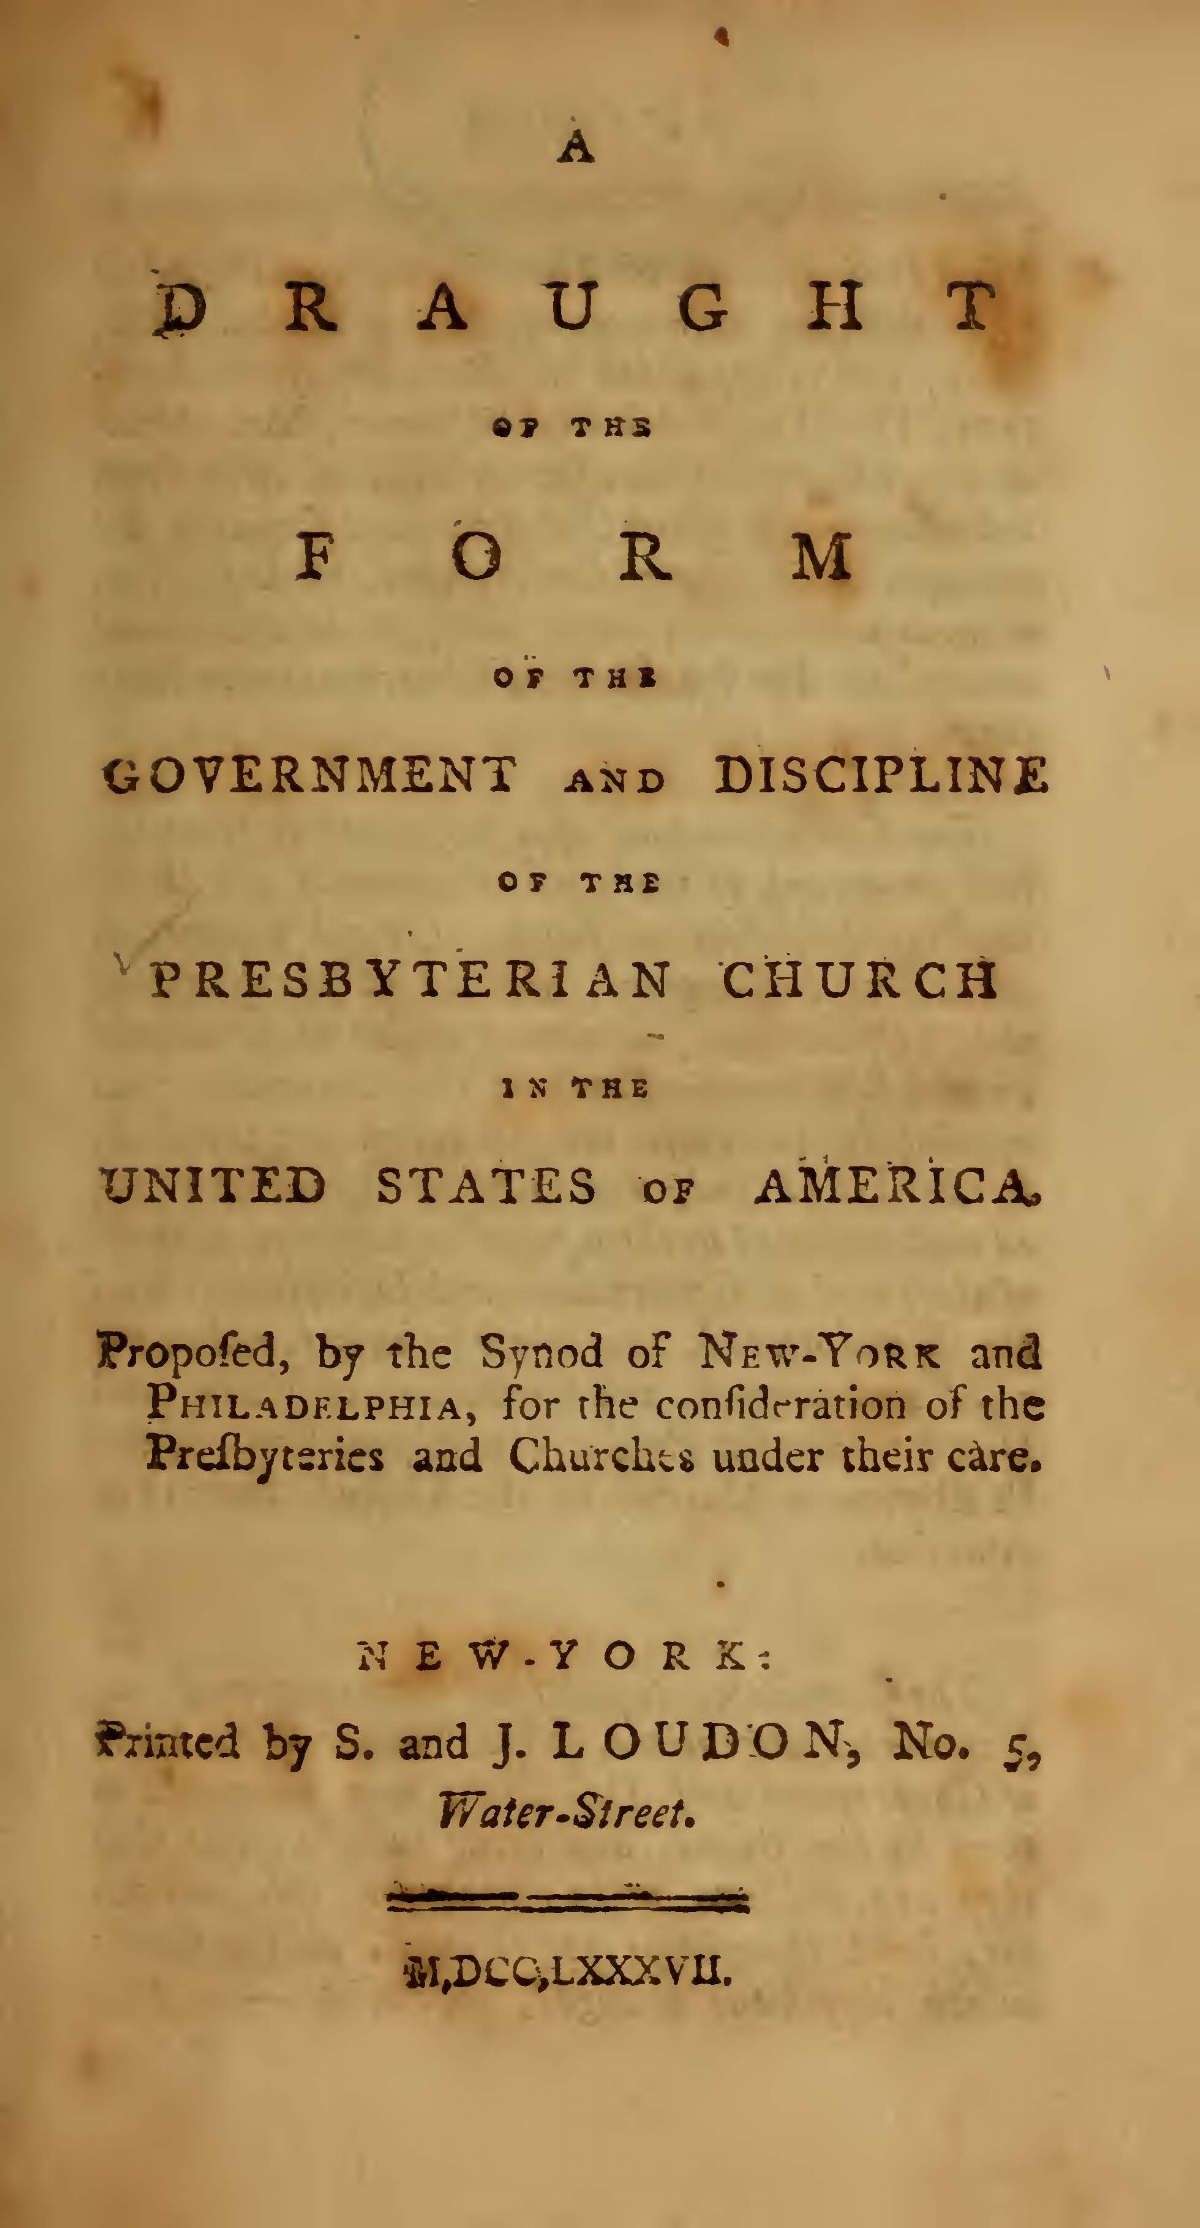 Rodgers, John, A Draught of the Form of the Government and Discipline of the PCUSA Title Page.jpg